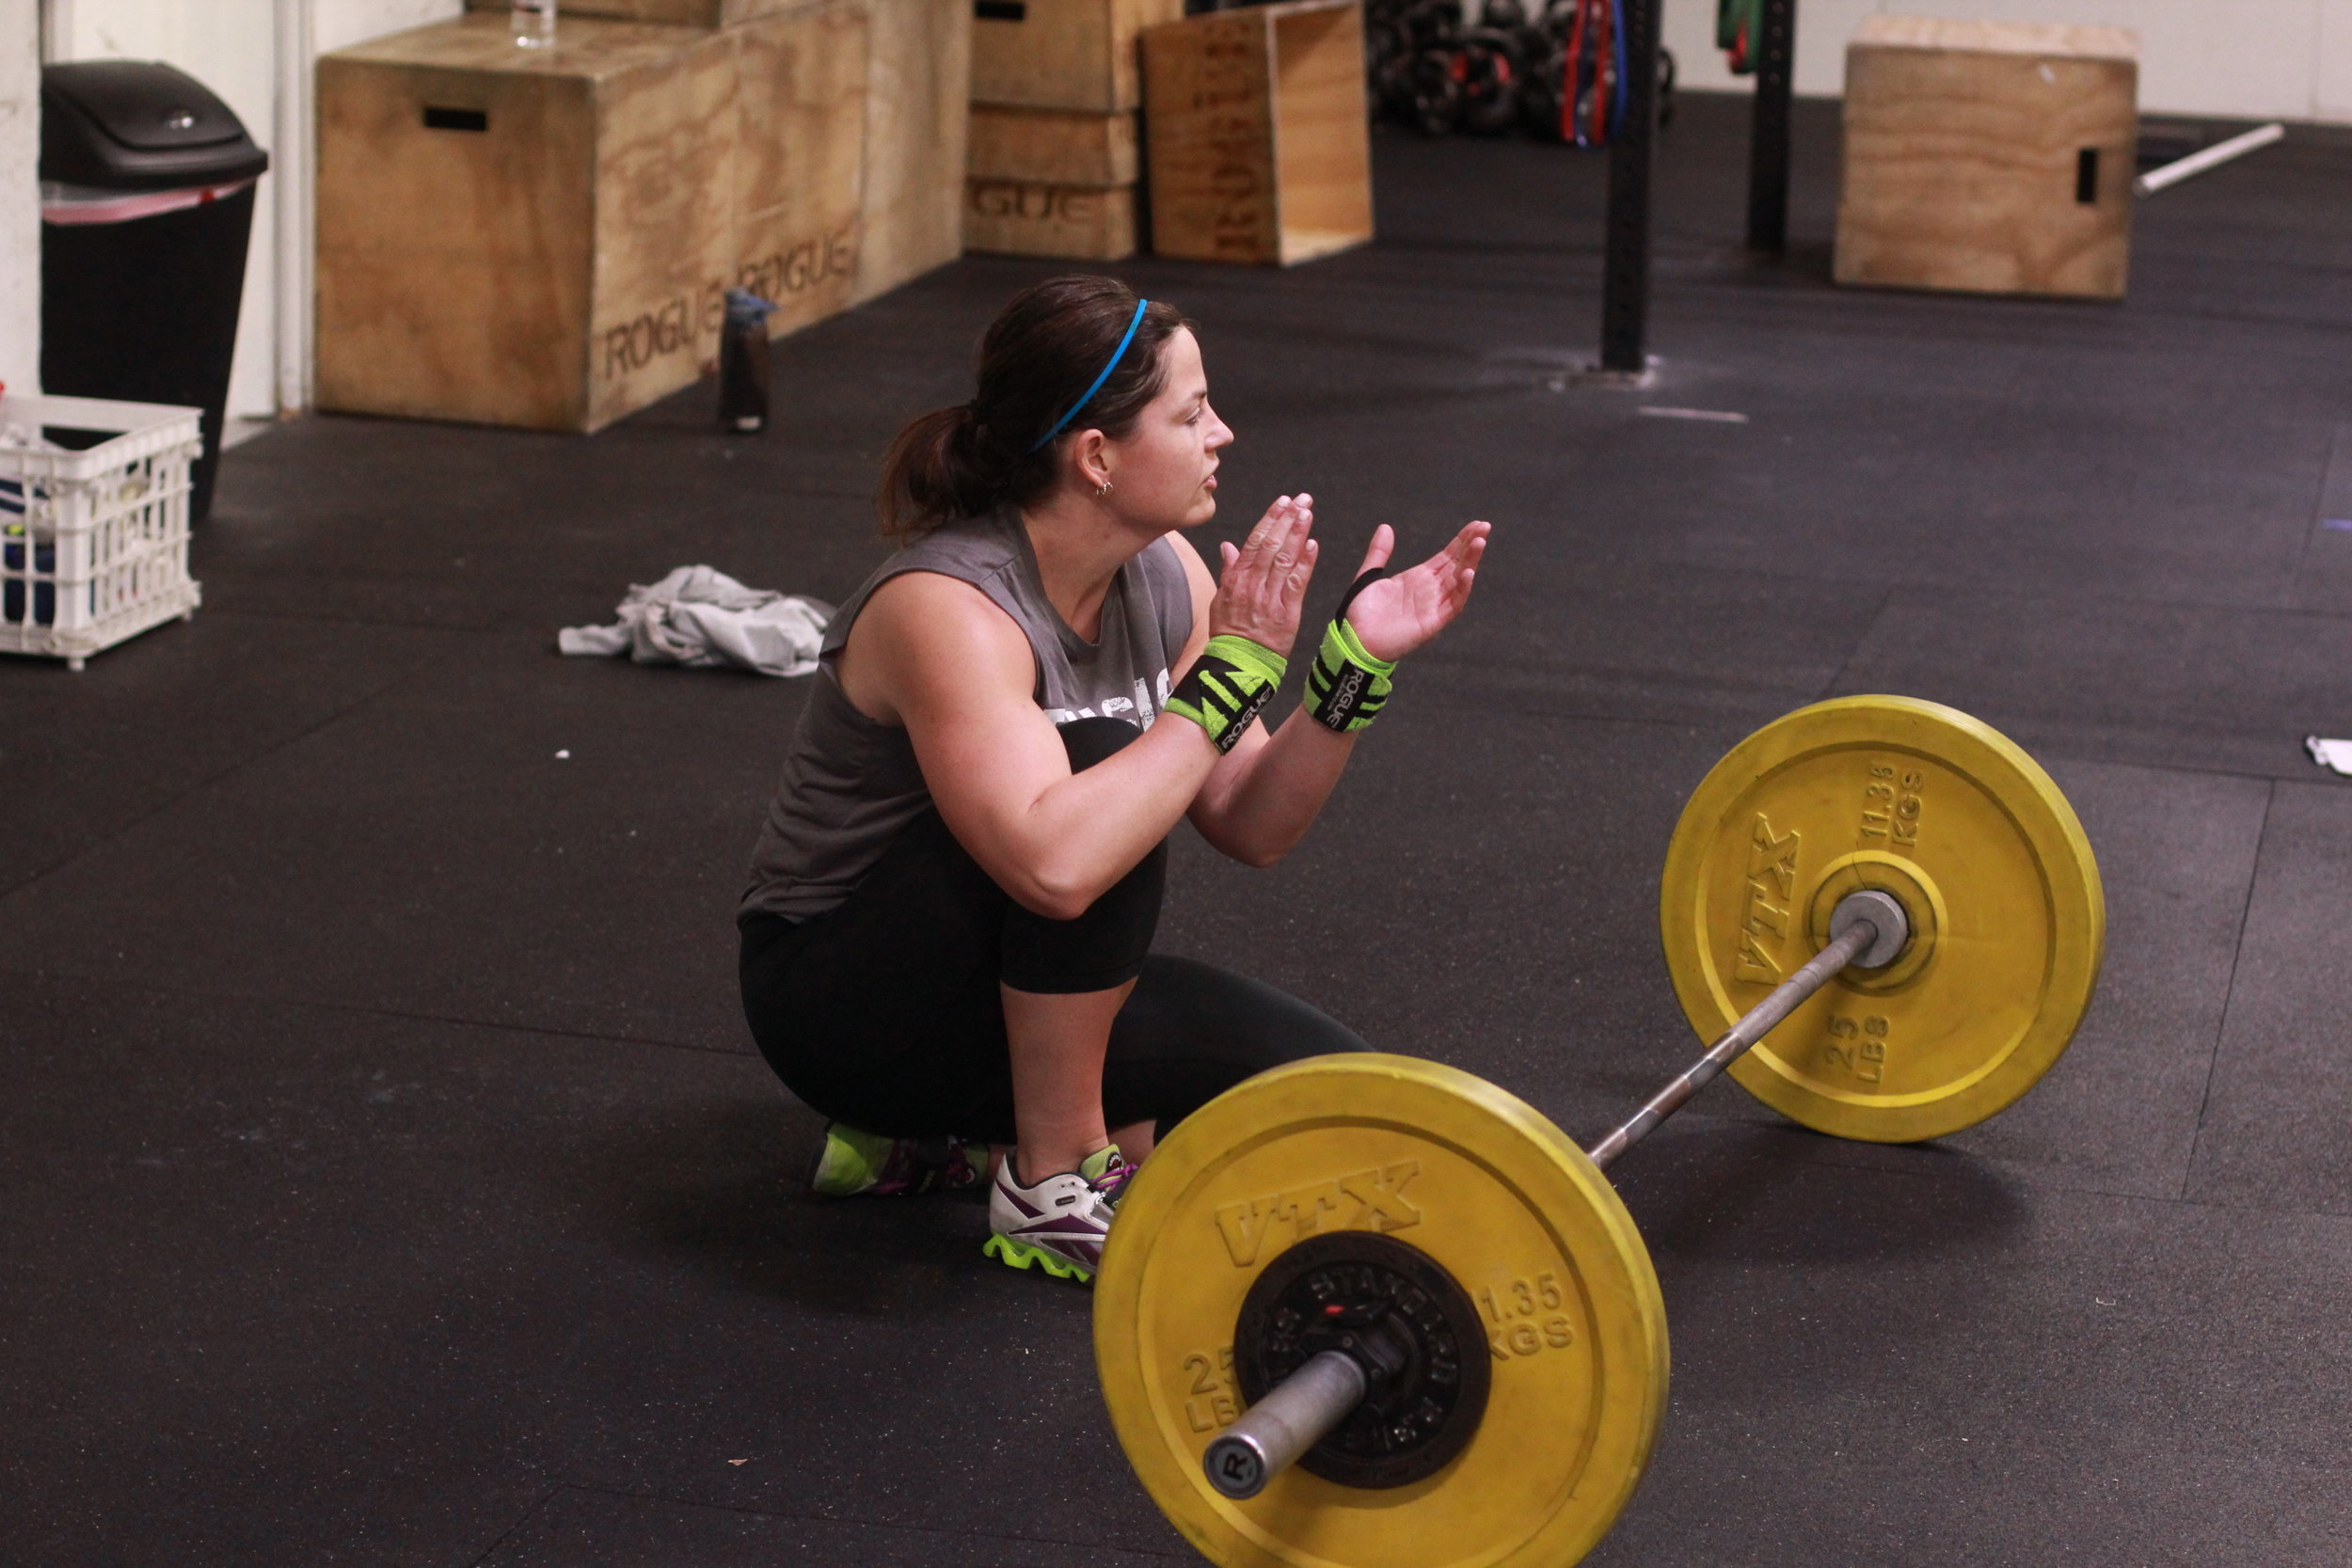 PVCF athlete, Loren Davine cheers after finishing the workout. In CrossFit, we support every single person rather than the individual - that's extraordinary!